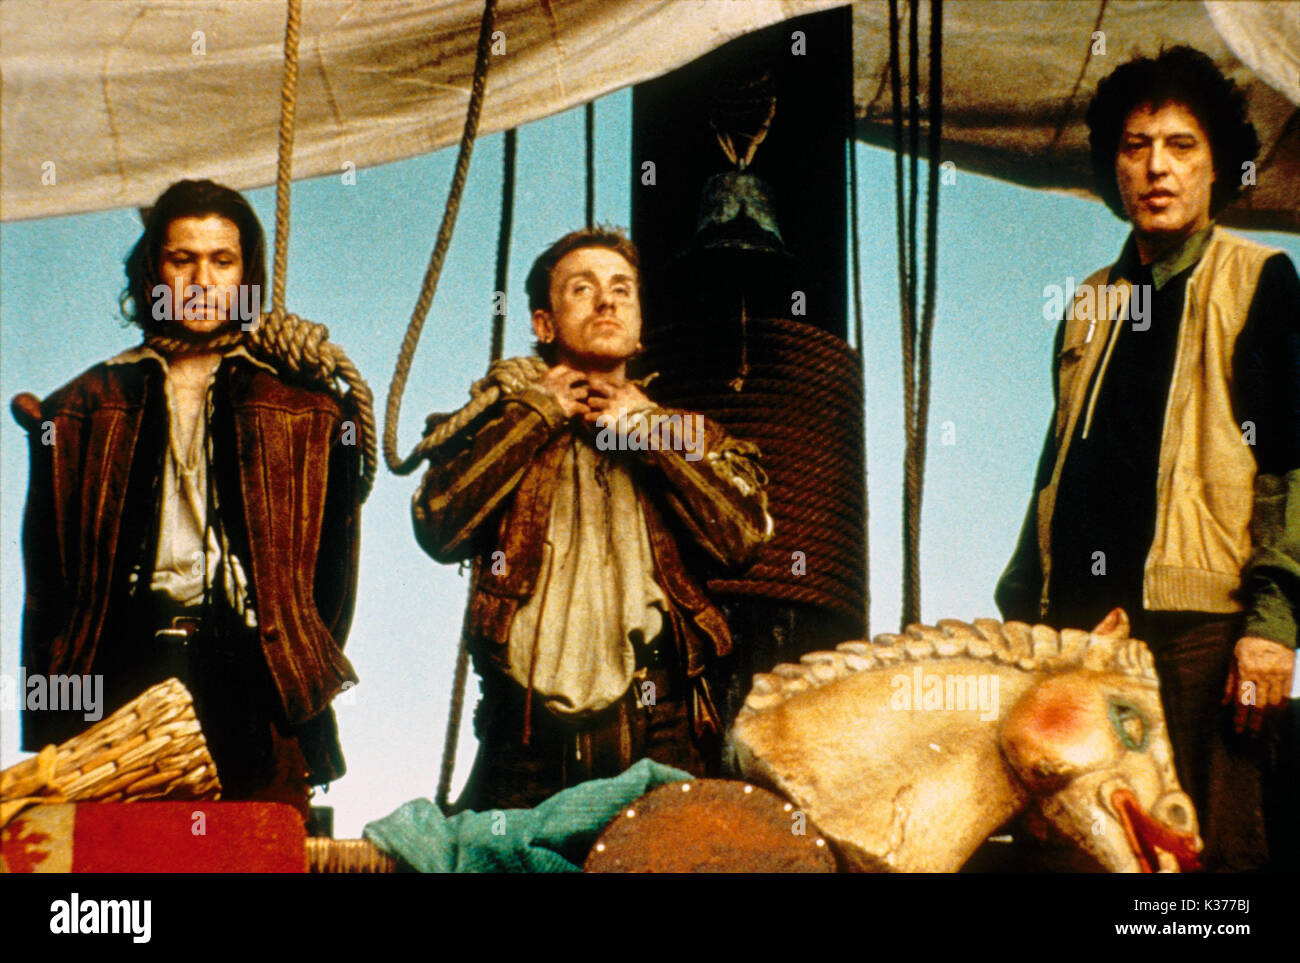 ROSENKRANTZ AND GUILDENSTERN ARE DEAD GARY OLDMAN, TIM ROTH, TOM STOPPARD Picture from the Ronald Grant Archive ROSENCRANTZ AND GUILDENSTERN ARE DEAD GARY OLDMAN, TIM ROTH, Director / Writer TOM STOPPARD     Date: 1990 - Stock Image